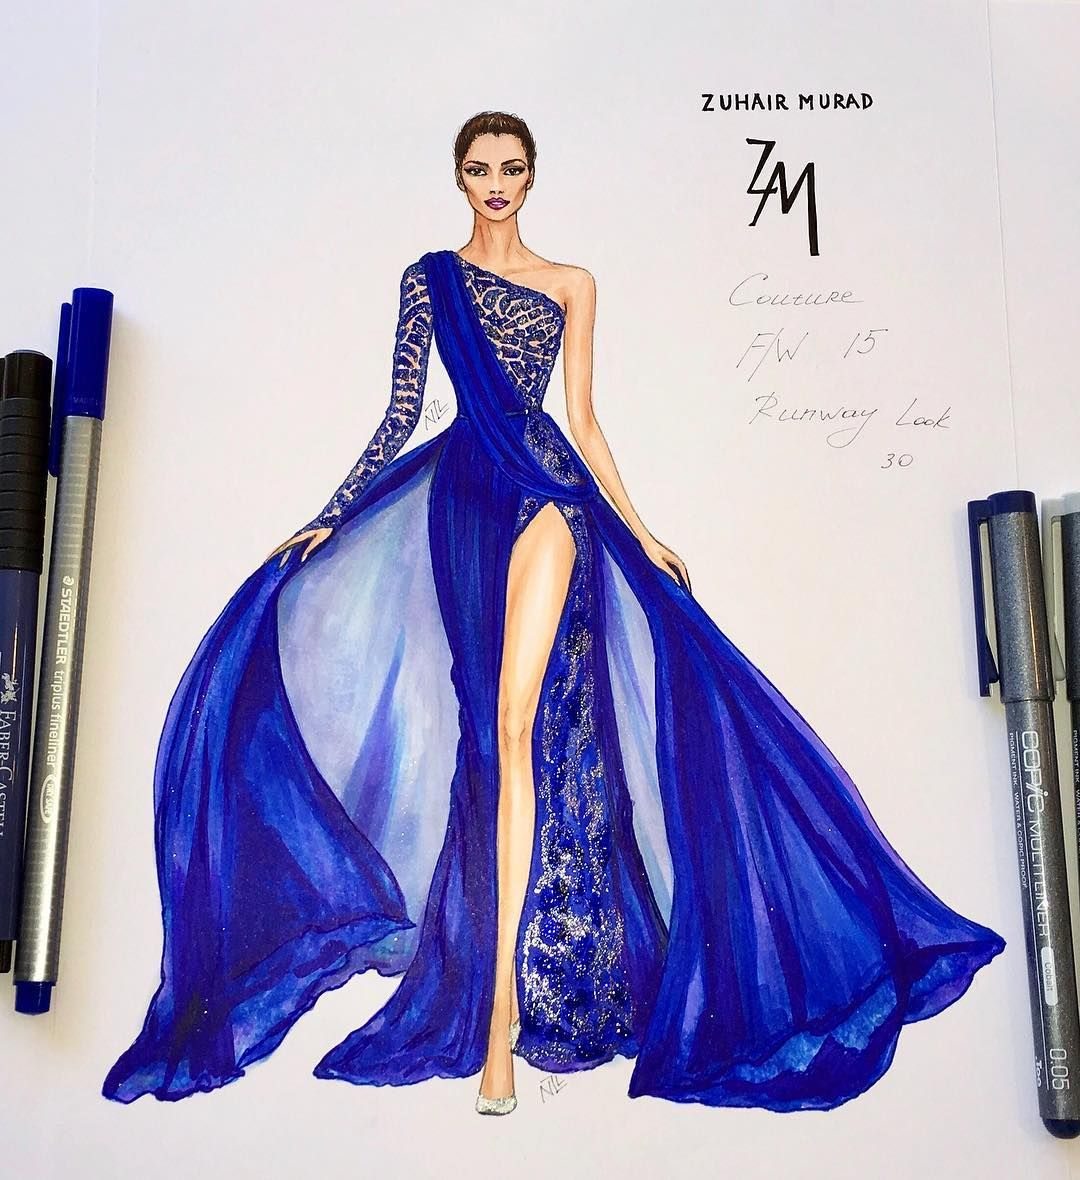 "Photo of NataliaZorinLiu on Instagram: ""#fashionillustration #zuhairmurad #luxury #designer #paris #glamour #luxurious #couture #event #gown #embroidery #wedding #hautecouture…"""